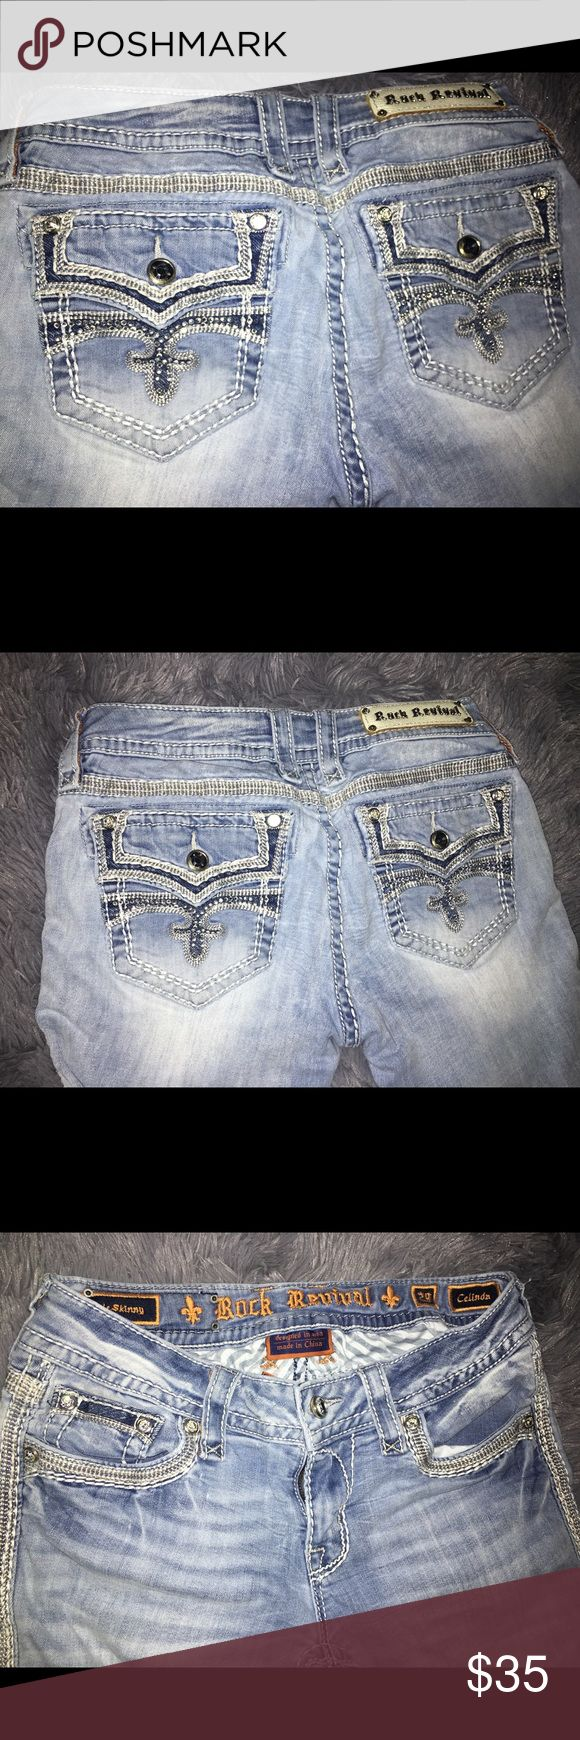 SELLING FOR CHEAP READ DESCRIPTION Lightwash skinny jeans! Name brand! There is a rip on the inside of the thigh that can be easily sewn up... but I don't know how to sew! Selling for cheap Rock Revival Jeans Skinny